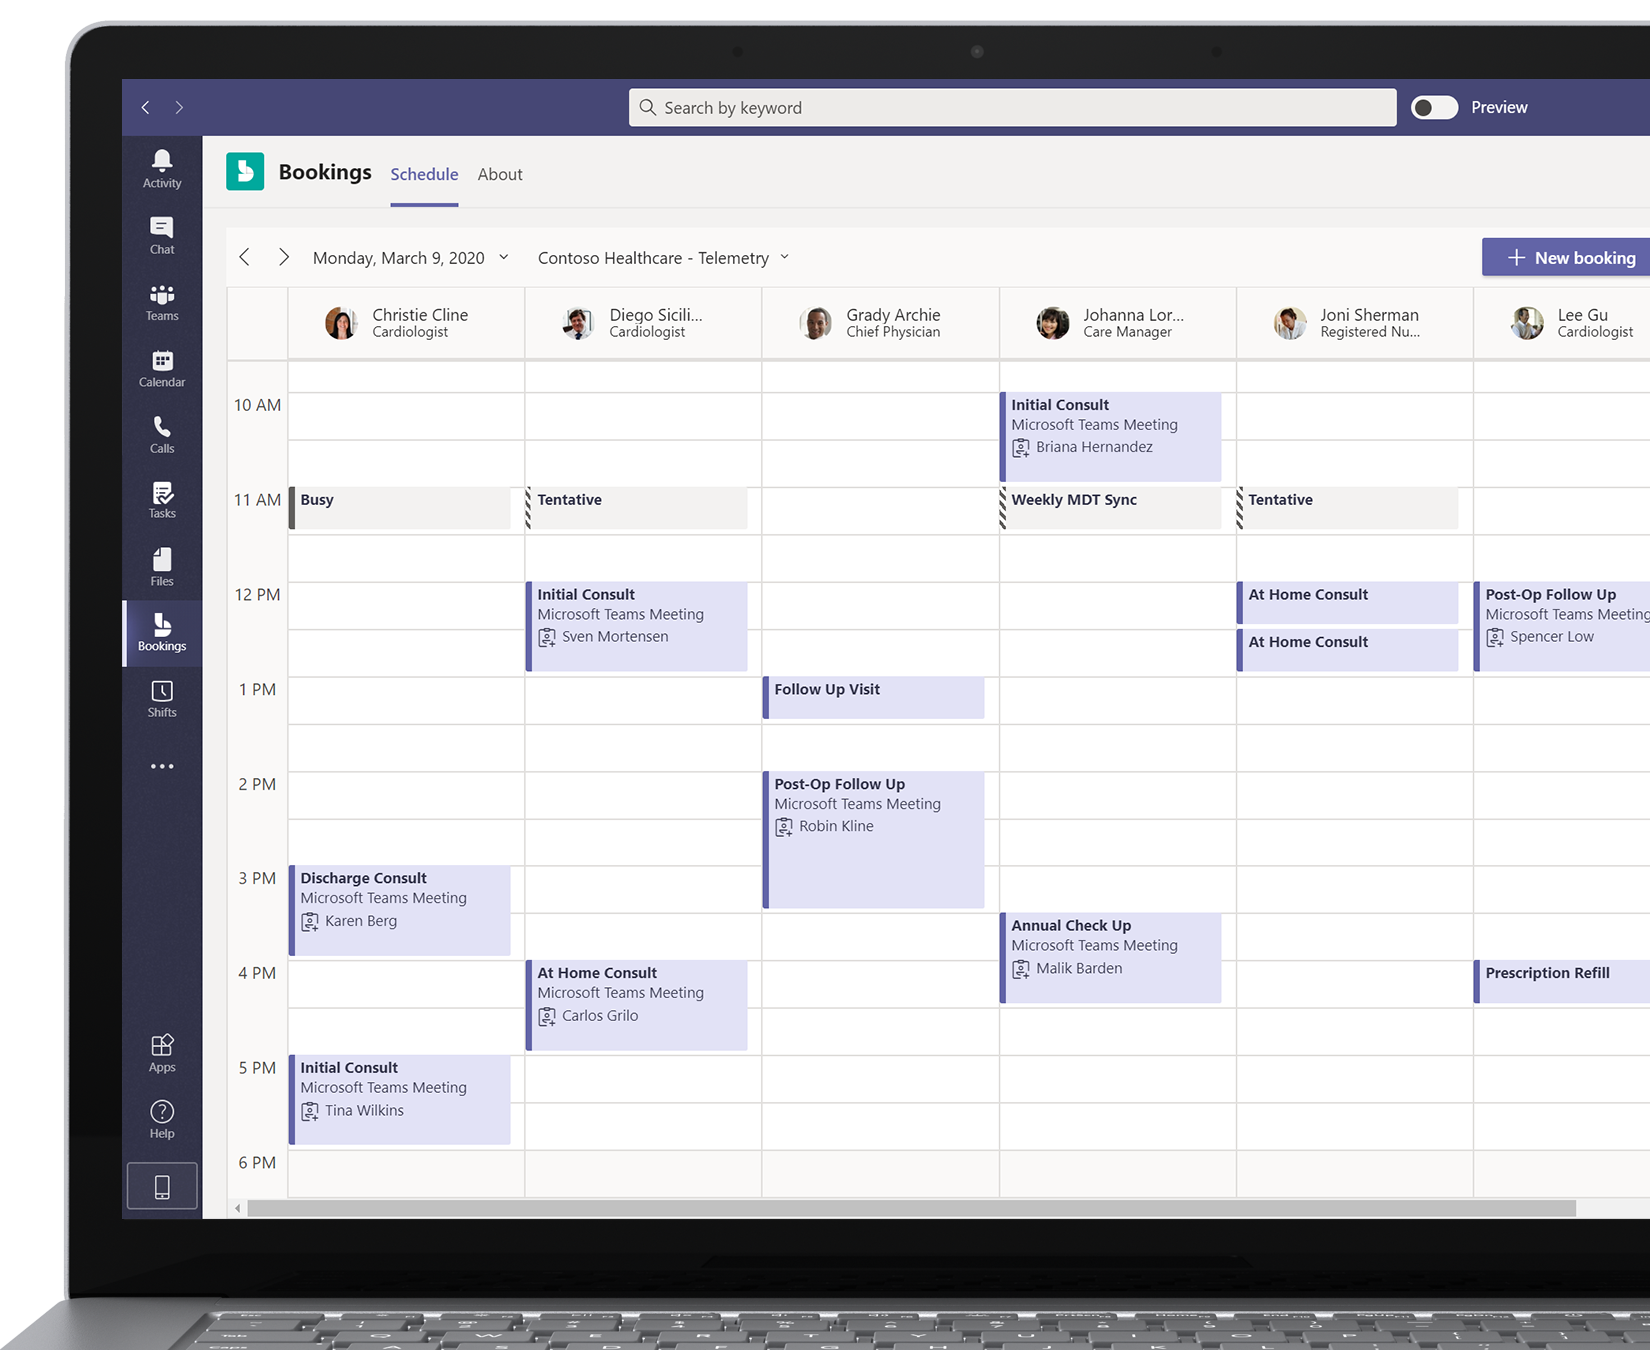 A laptop screen showing several medical professionals' schedules in the Bookings calendar within Microsoft Teams